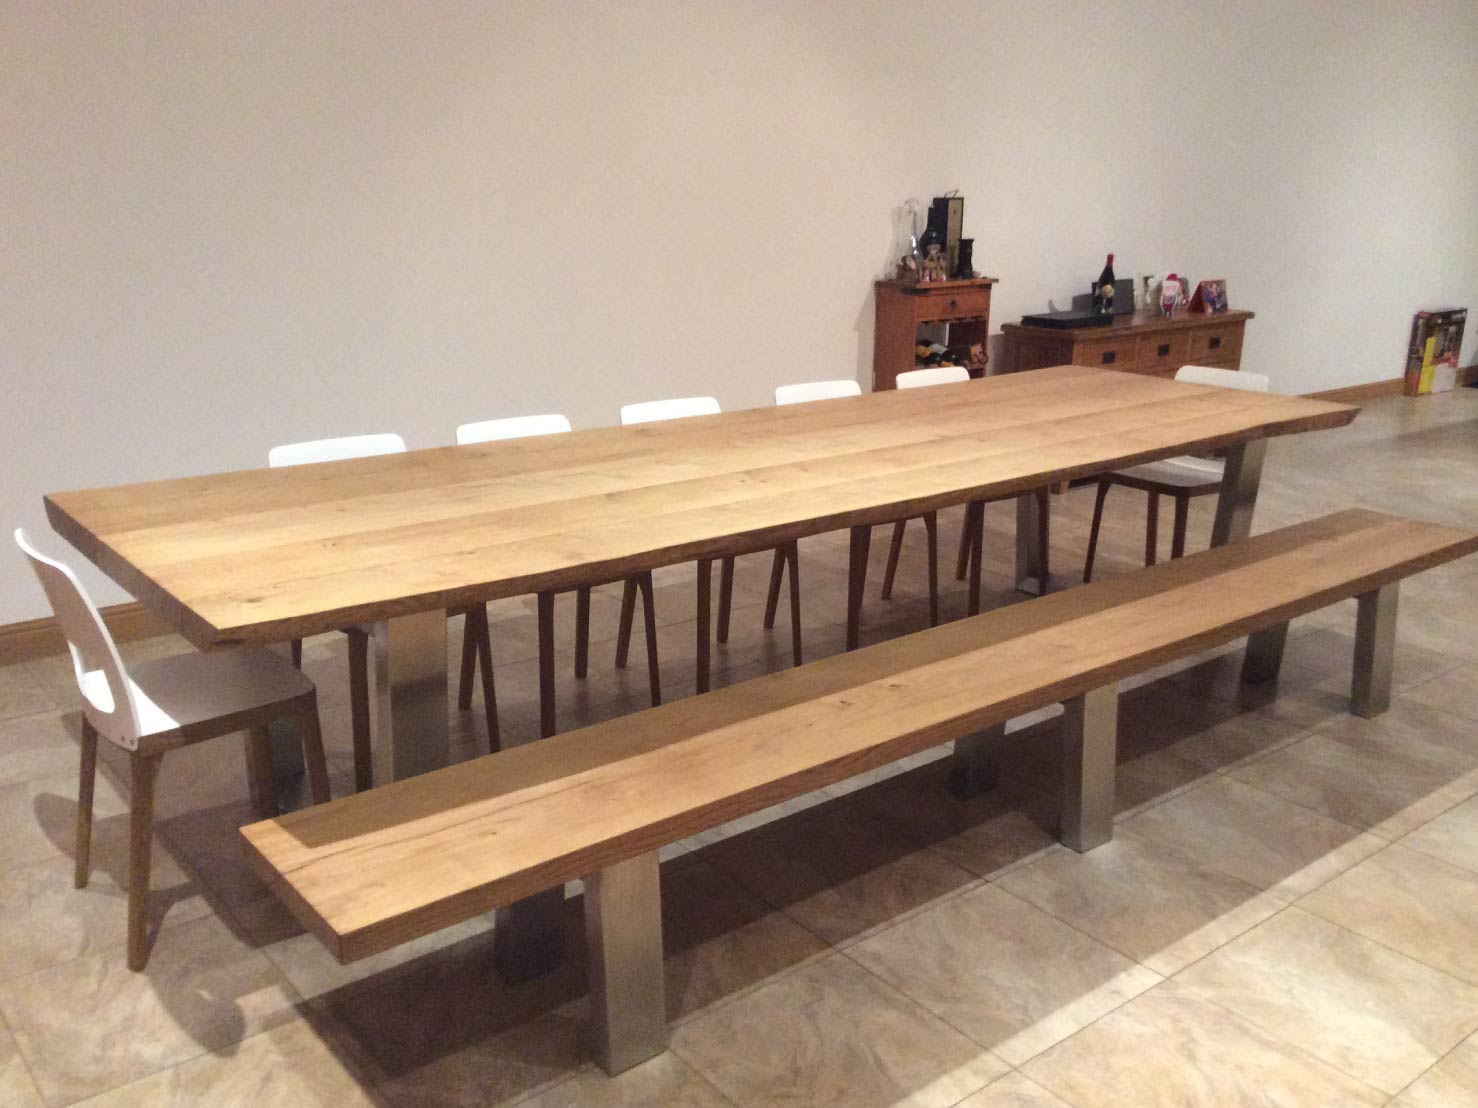 large-dining-table-set-from-abacus-tables-komodo-3.3-with-matching-bench-&-chairs-project-454